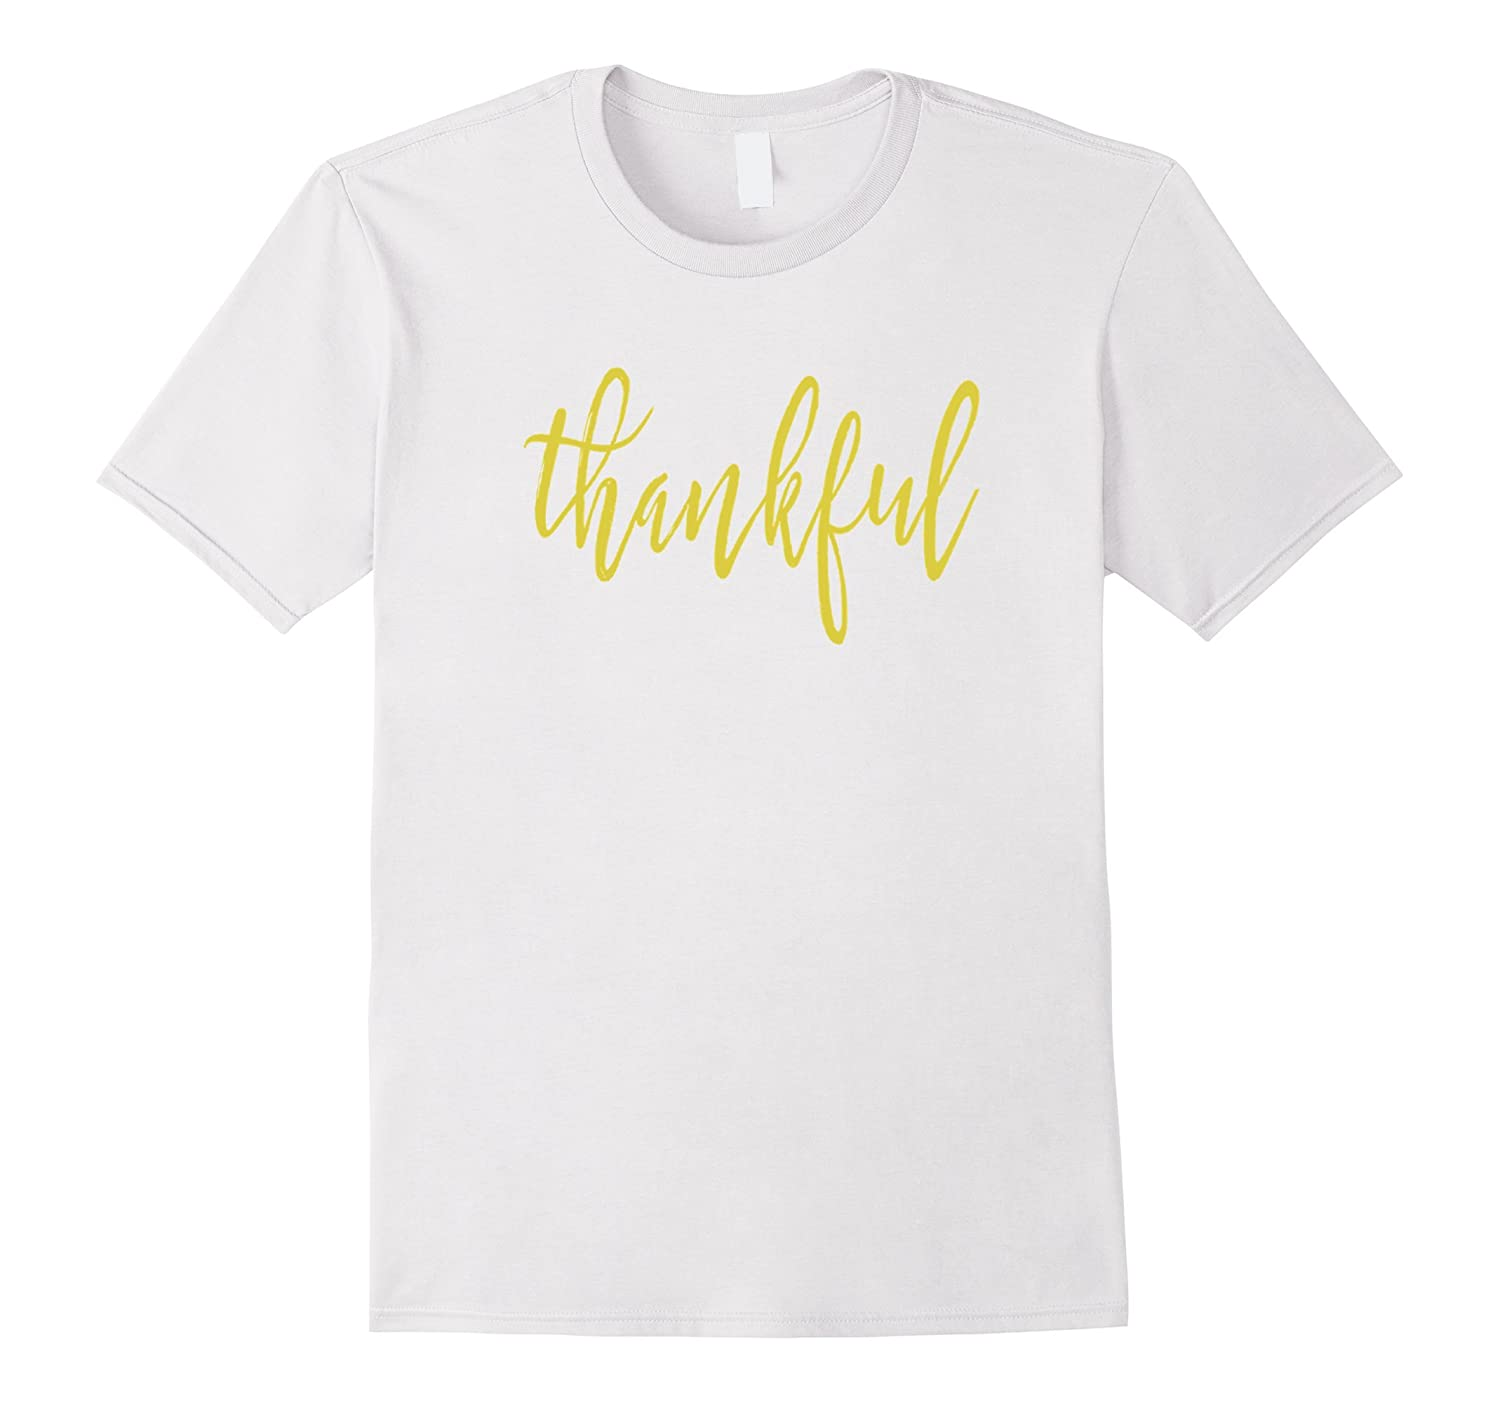 THANKFUL - SIMPLE, BEAUTIFUL QUOTE THANKSGIVING T-SHIRT-BN